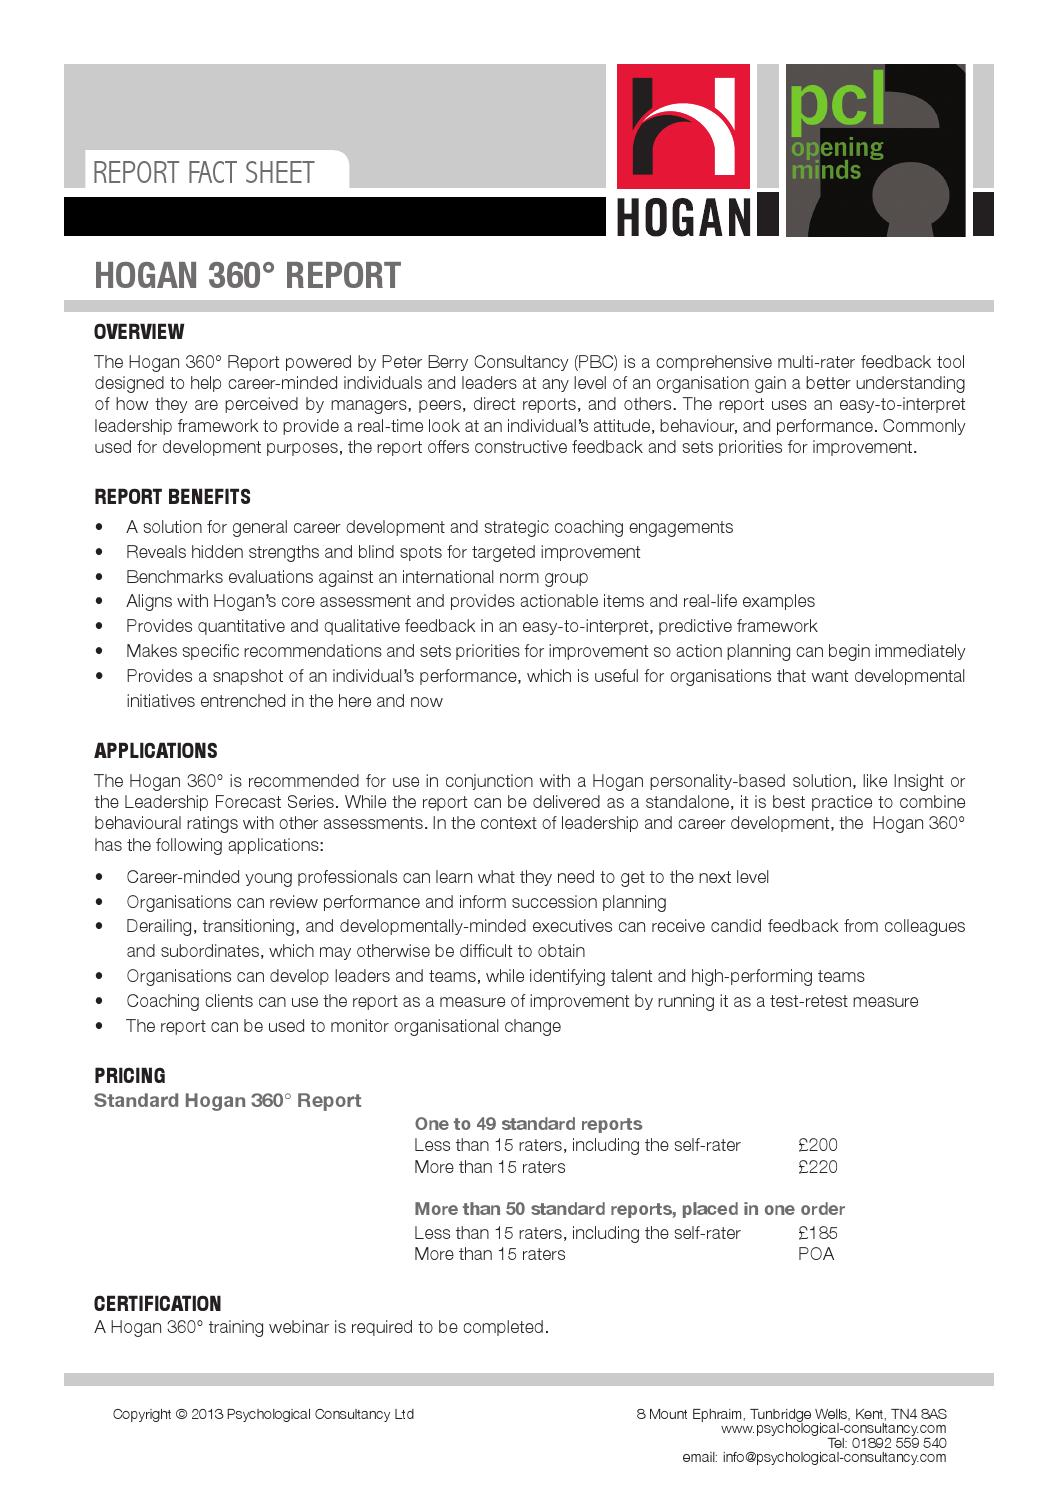 Hogan 360 report fact sheet by Psychological Consultancy Limited ...